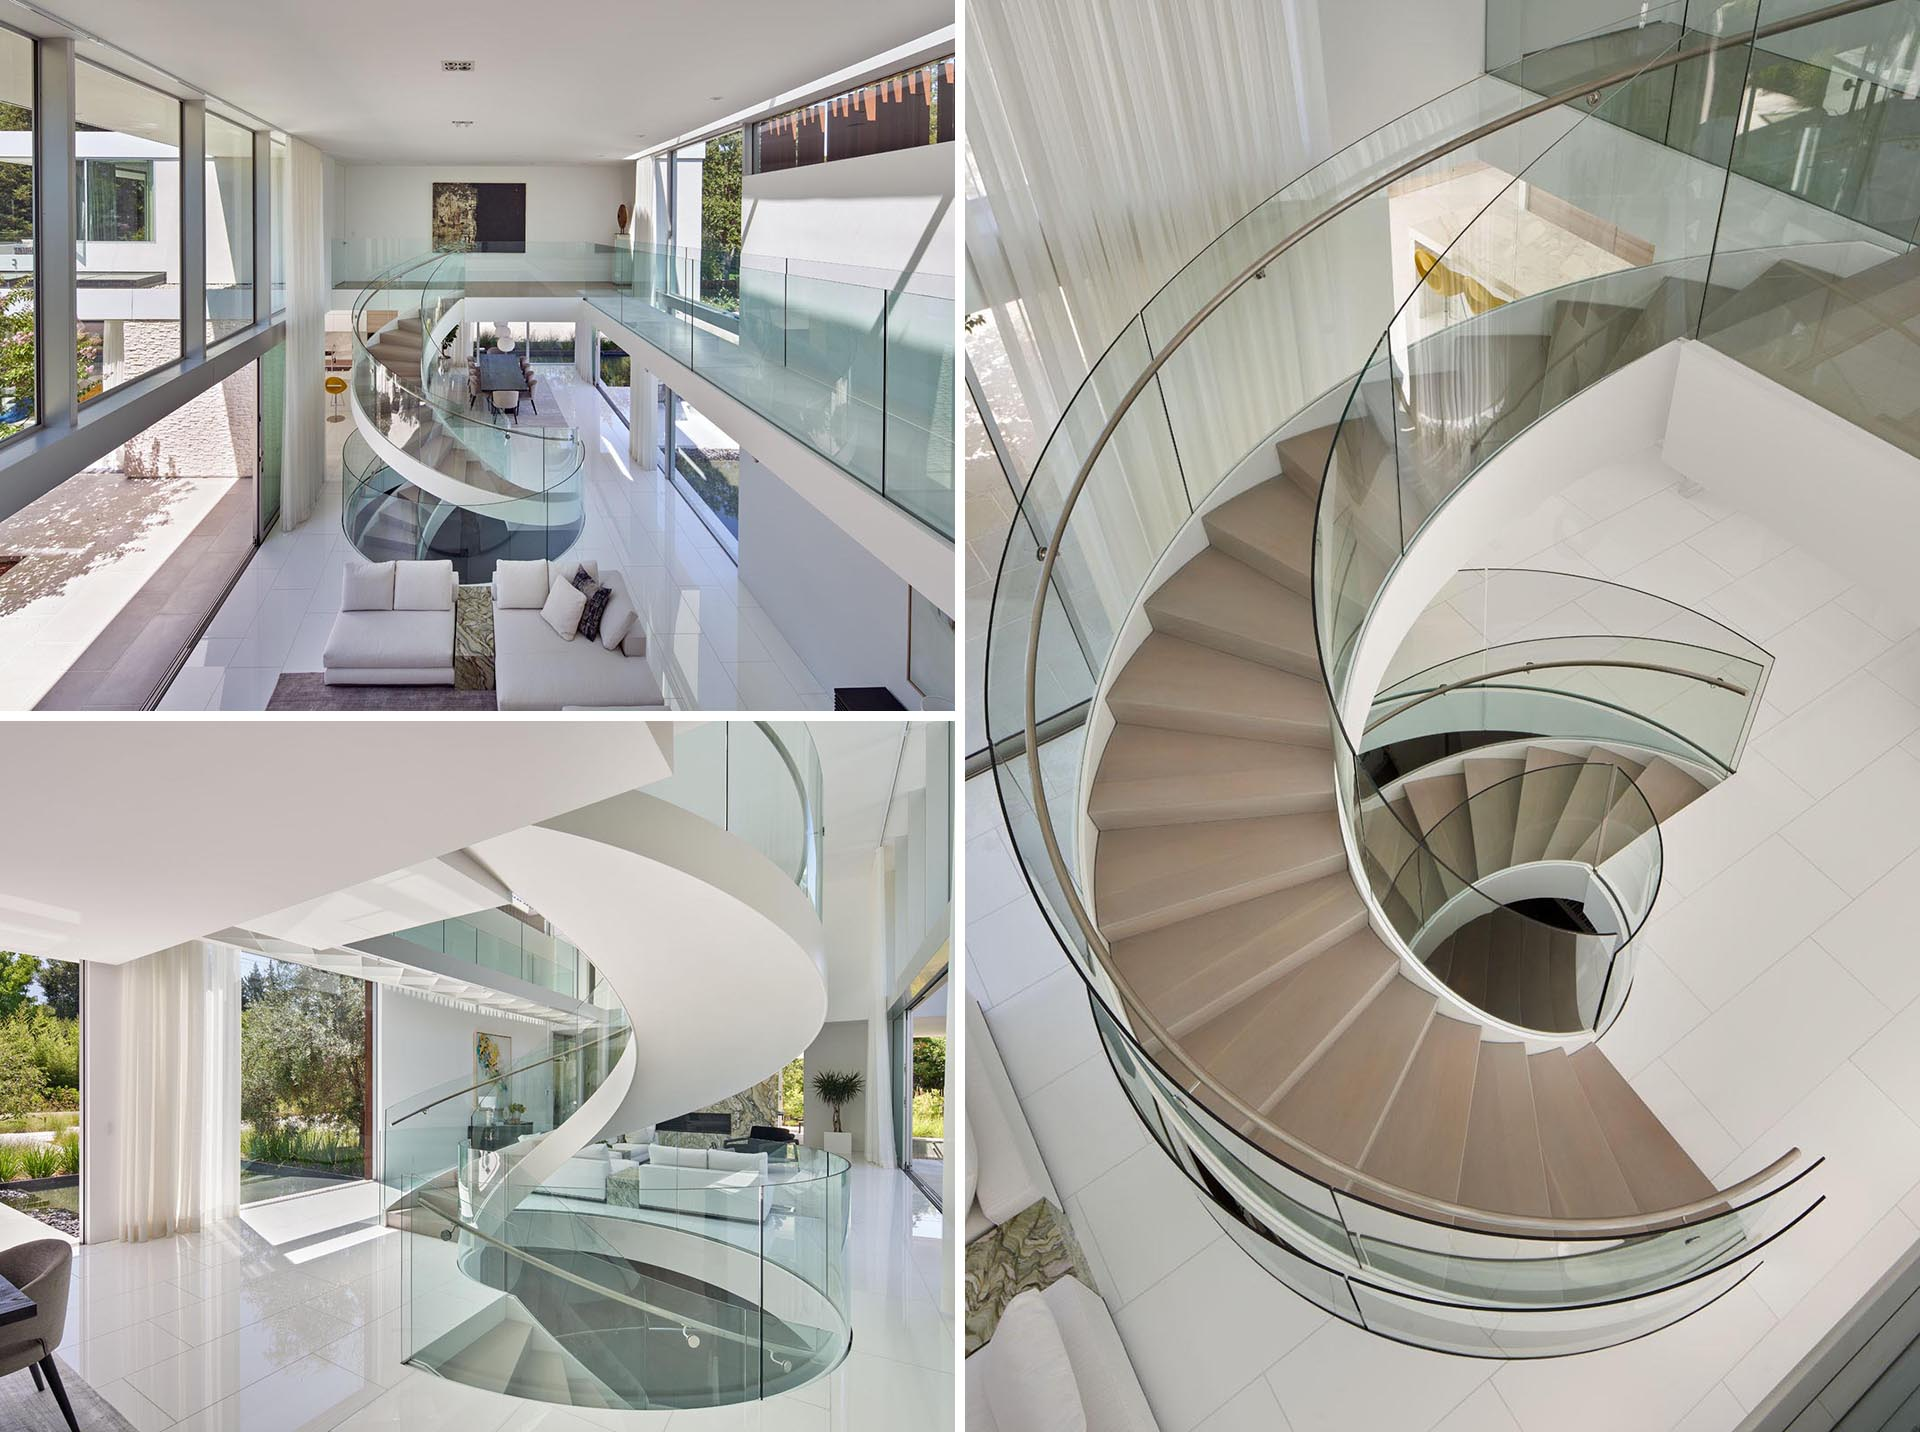 This custom designed spiral staircase includes glass handrails and a steel frame that complements the surrounding white walls.